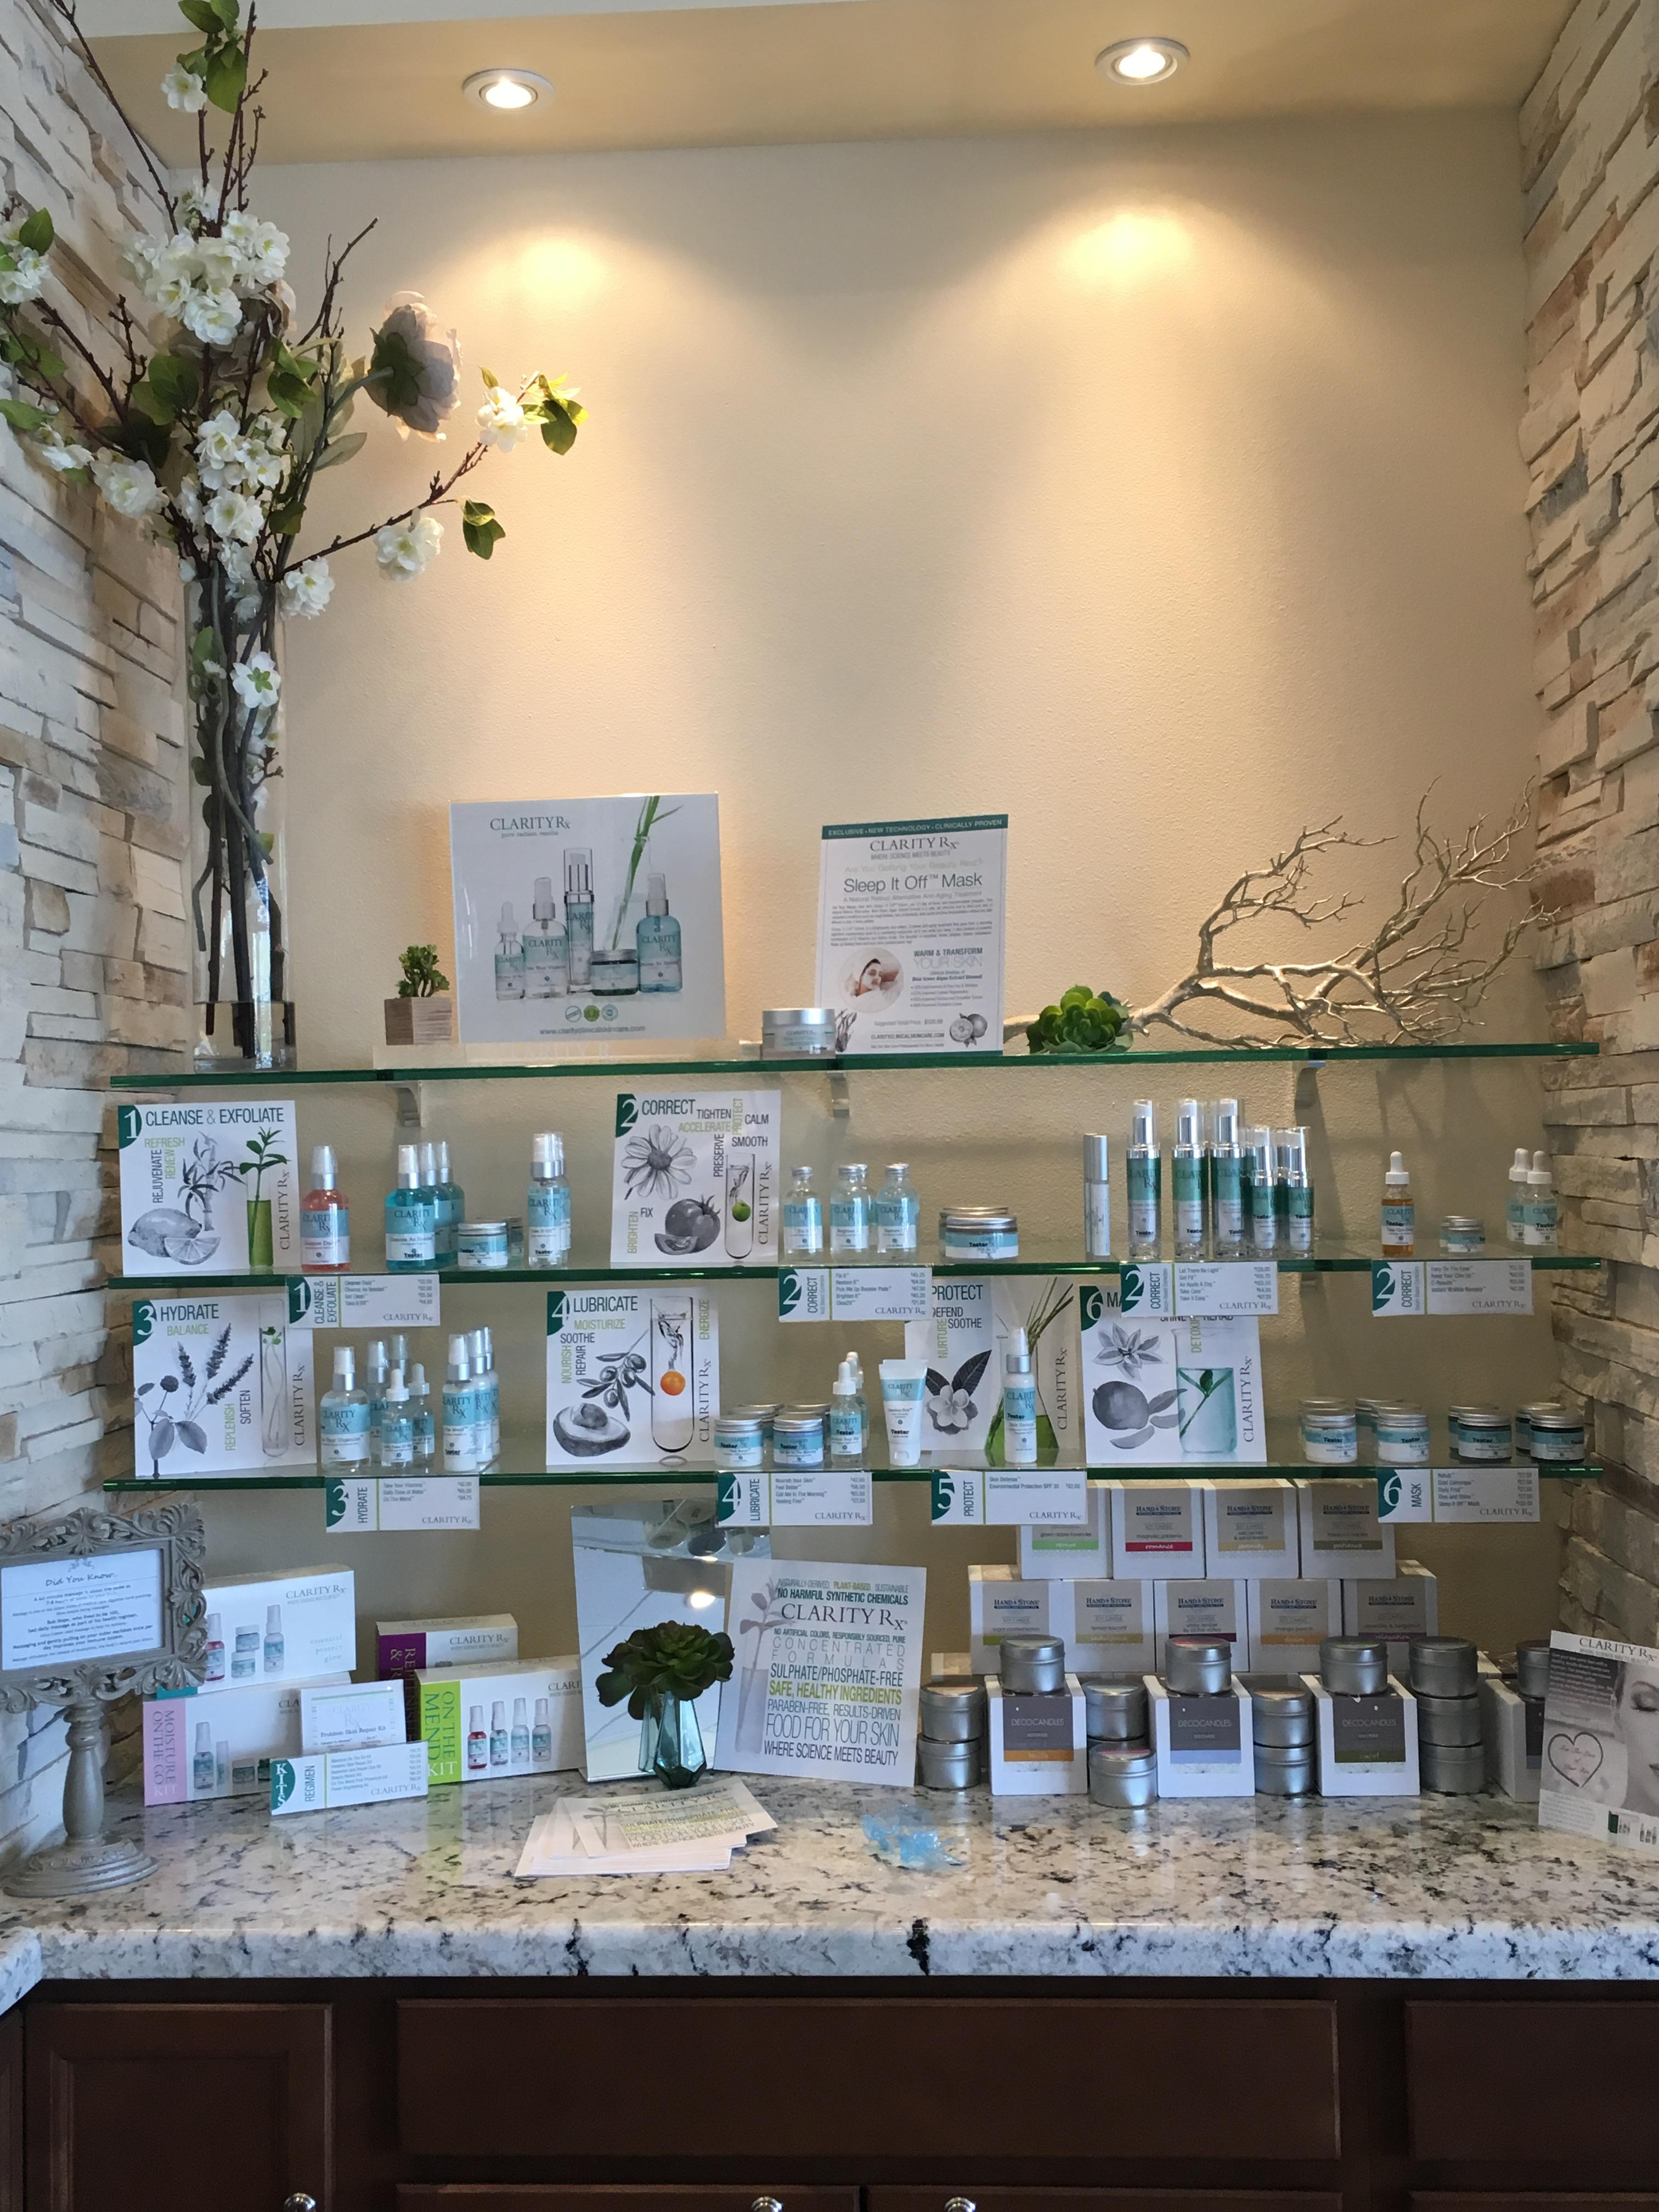 We offer an extensive array of high quality skin care products to help you look and feel your best.